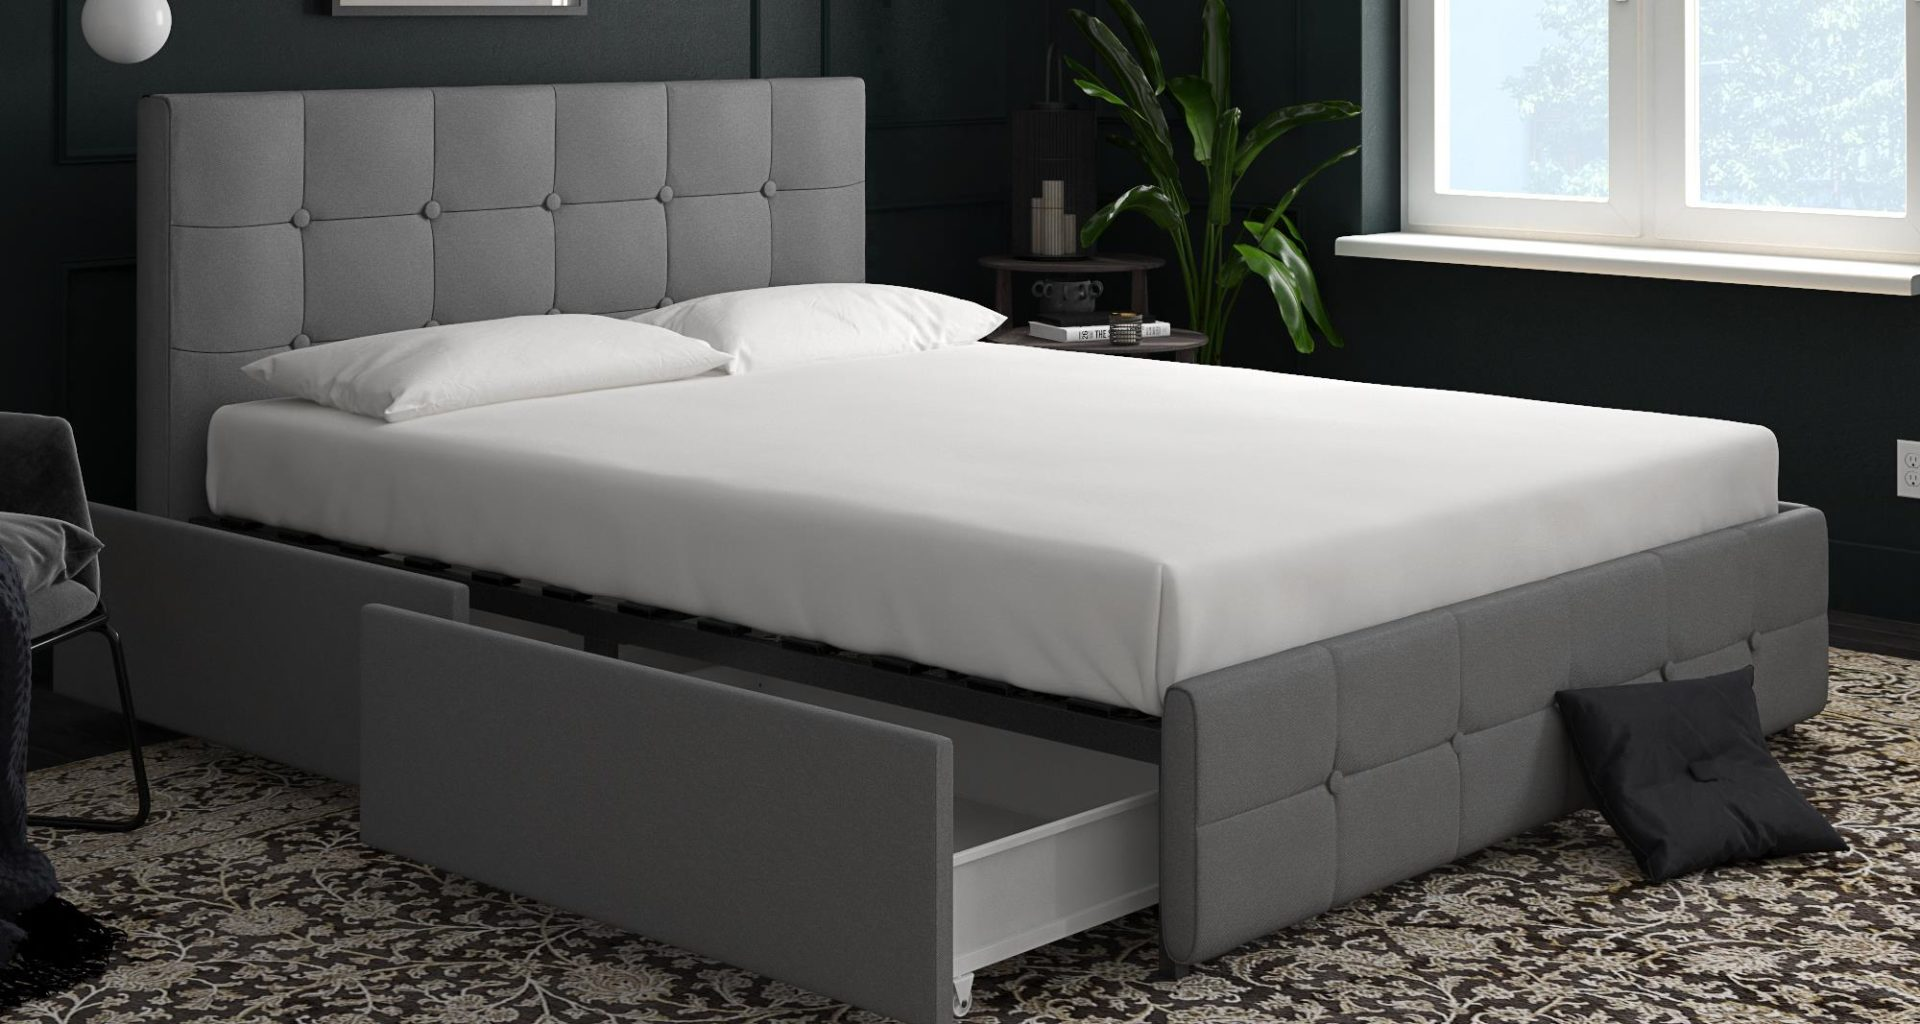 Contemporary bedroom with a grey upholstered platform bed and a white mattress